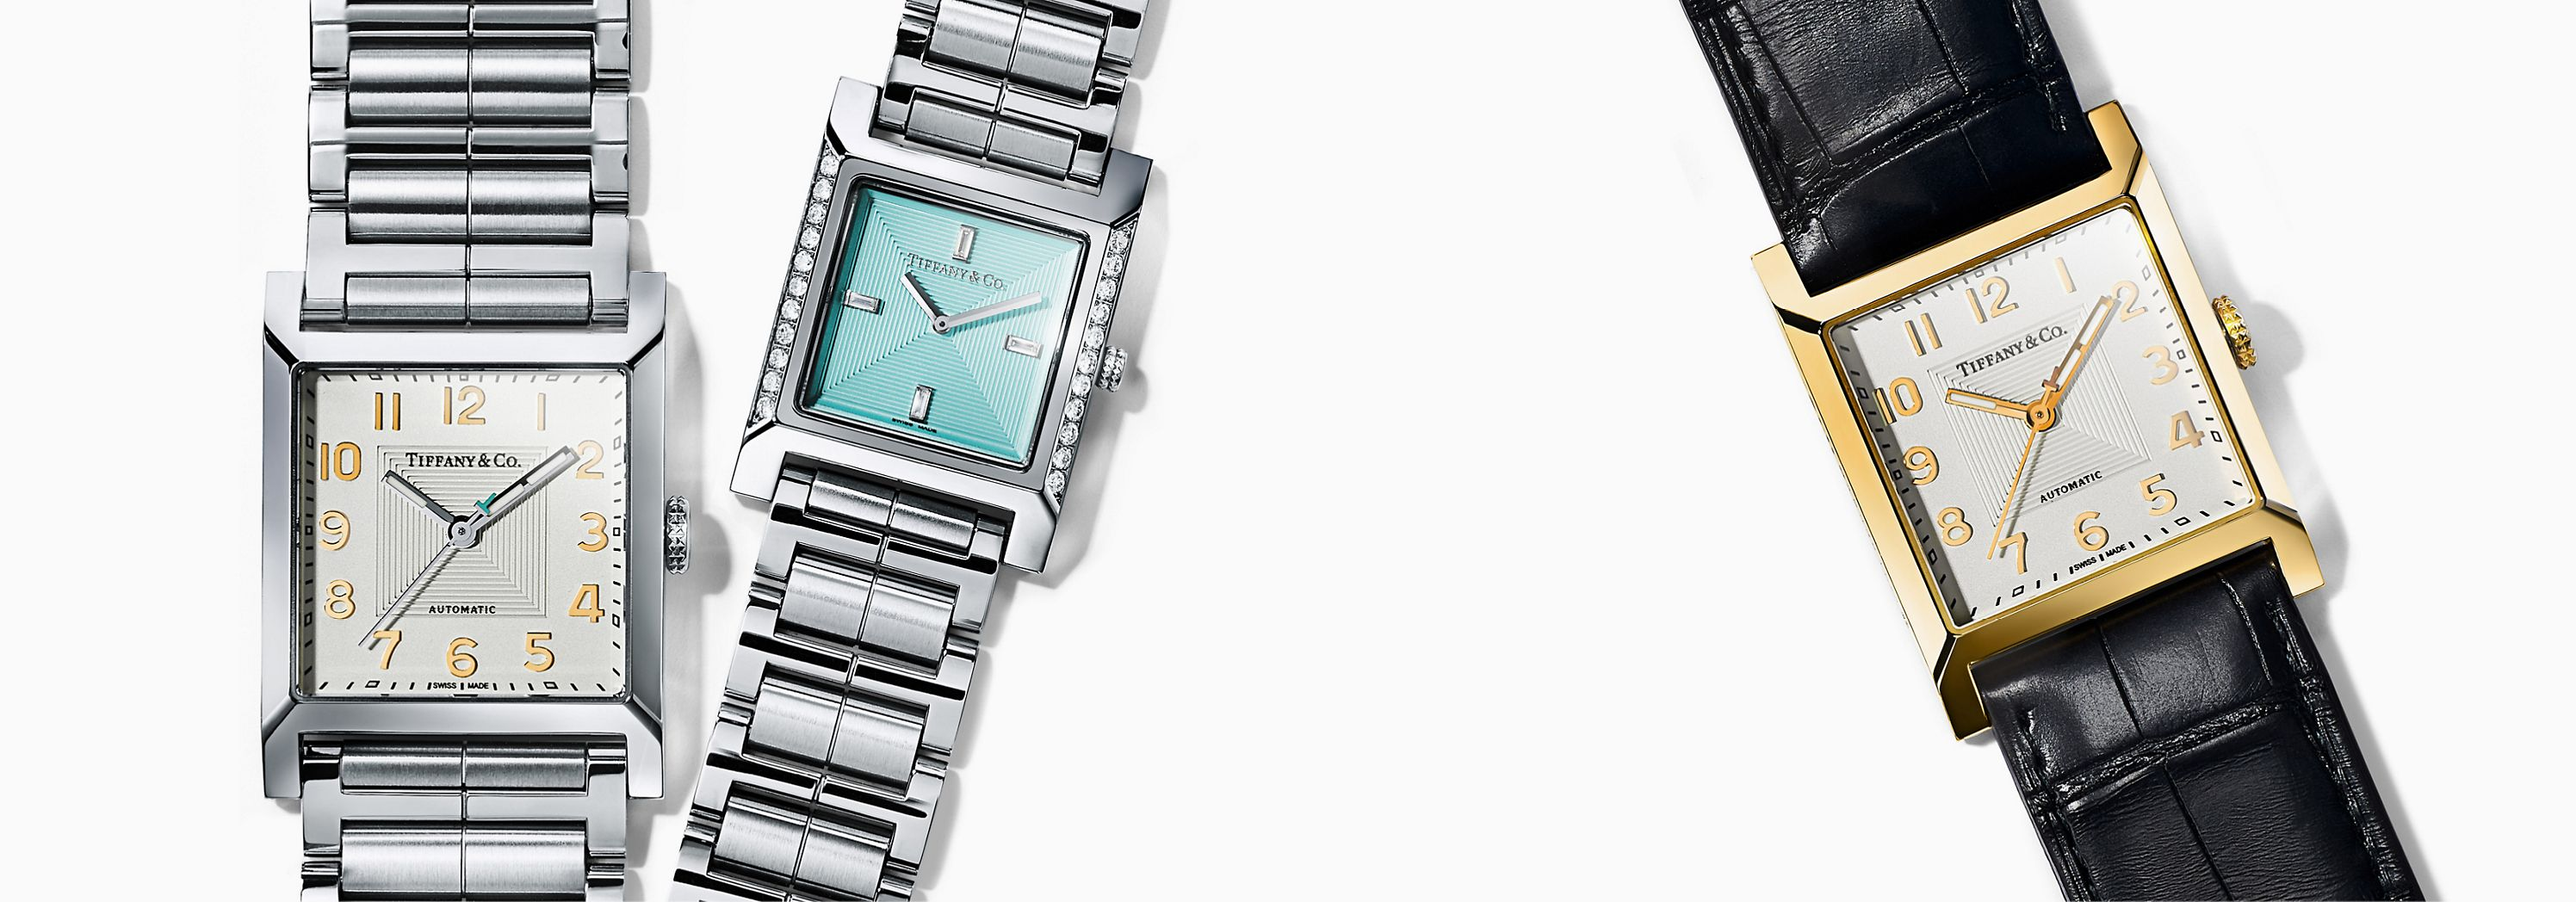 Orologi Tiffany 1837 Makers di Tiffany & Co.